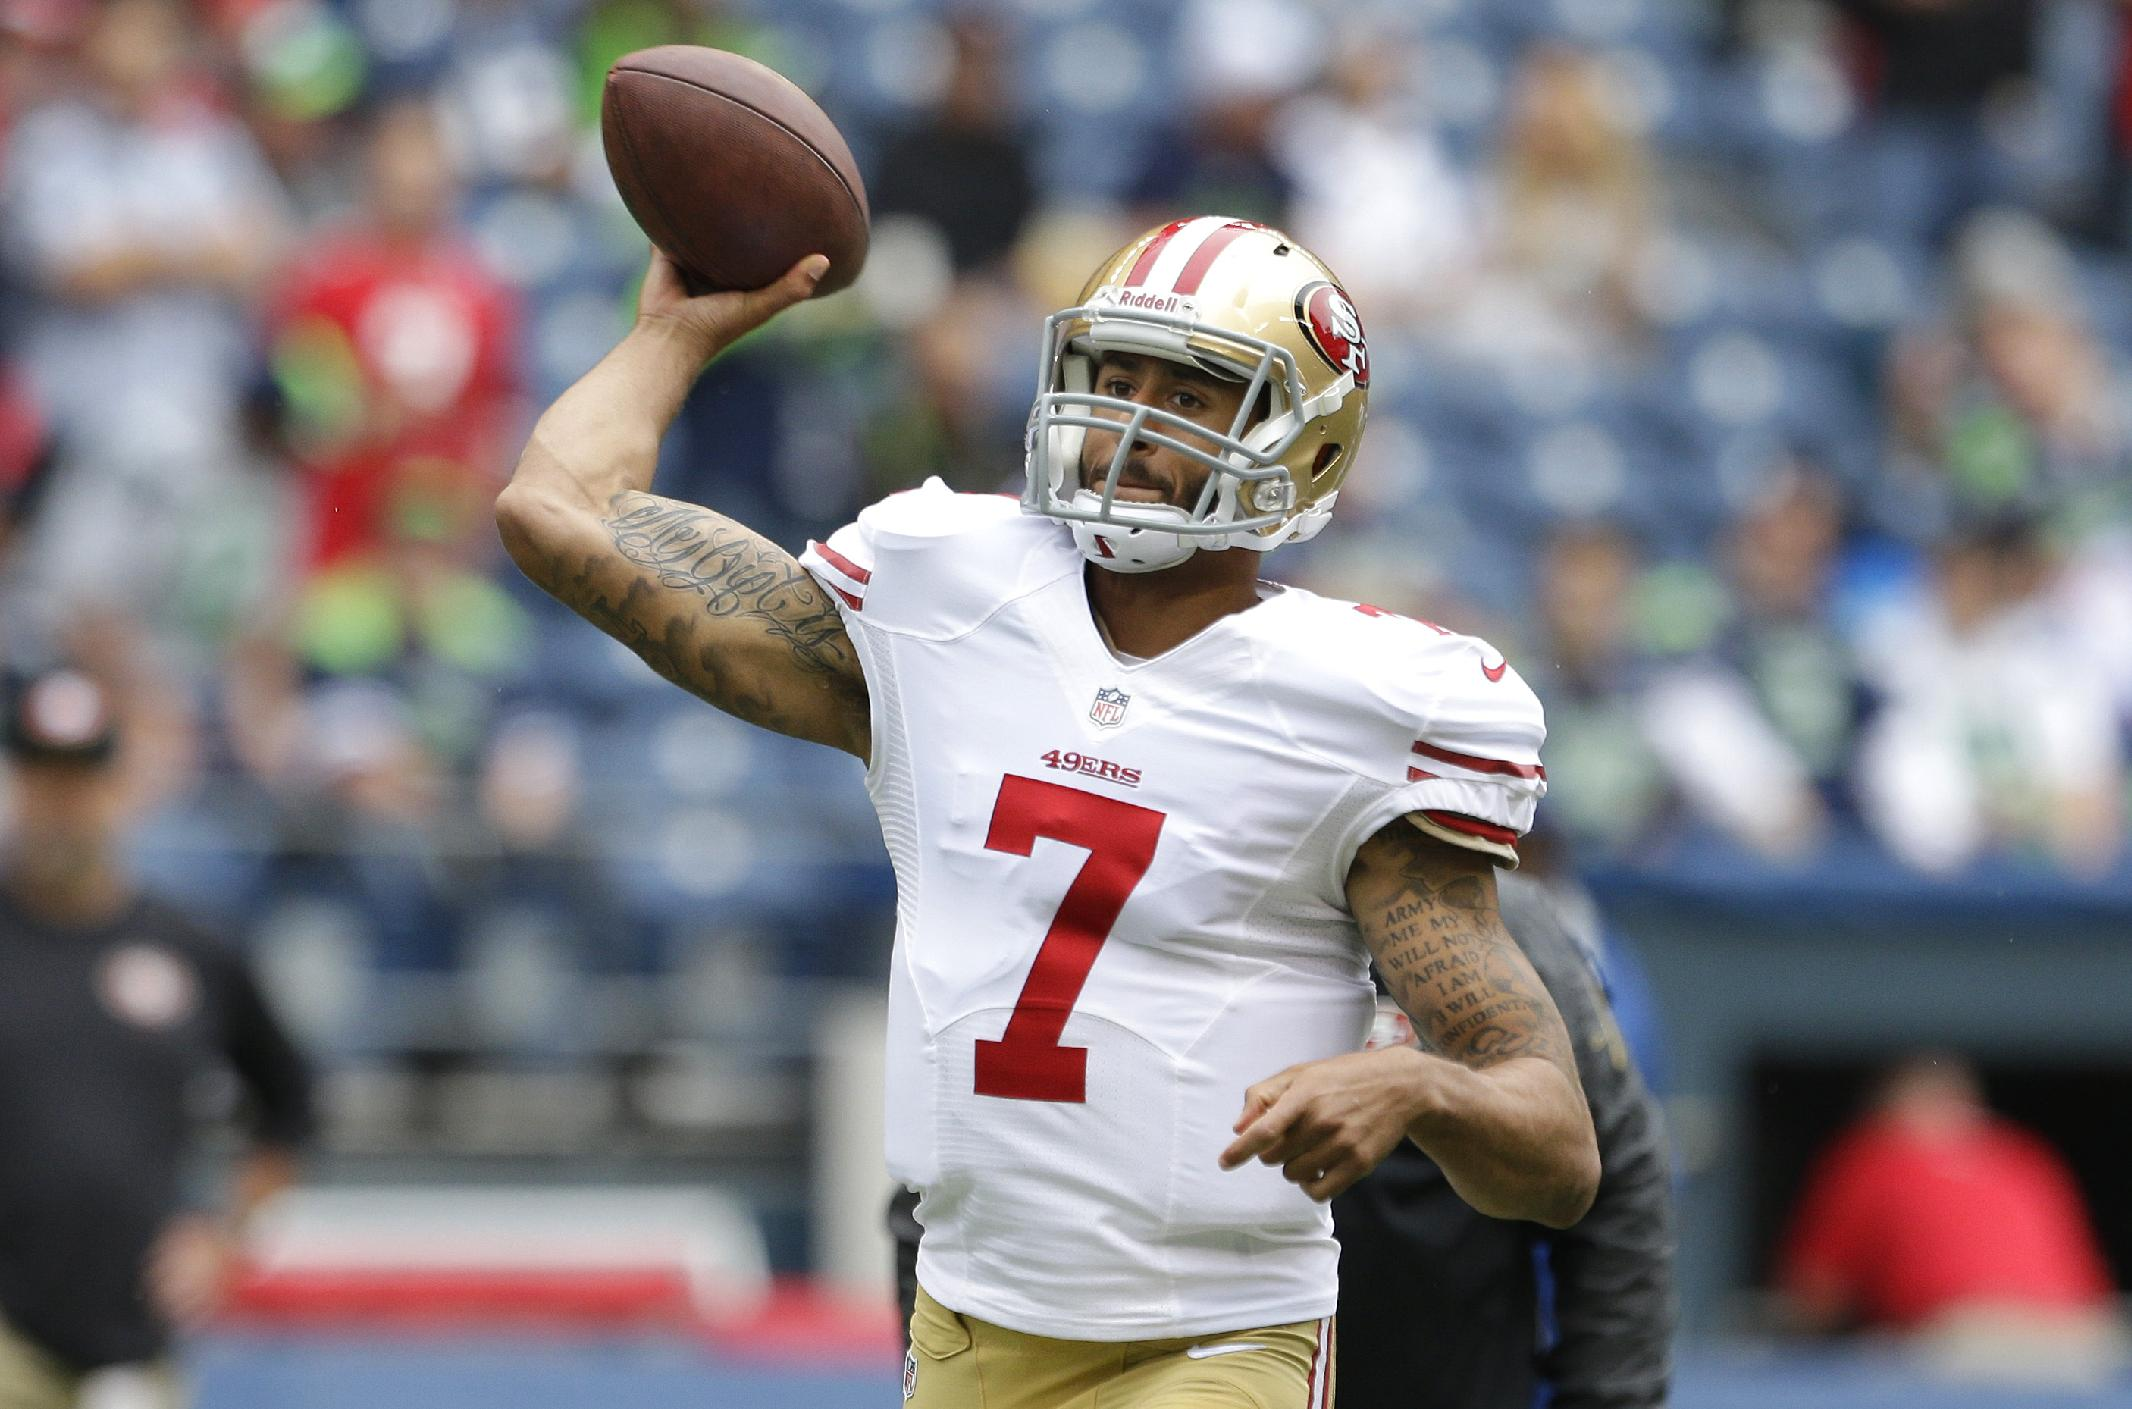 San Francisco 49ers quarterback Colin Kaepernick passes during warm ups before a NFL football game against the Seattle Seahawks, Sunday, Sept. 15, 2013, in Seattle